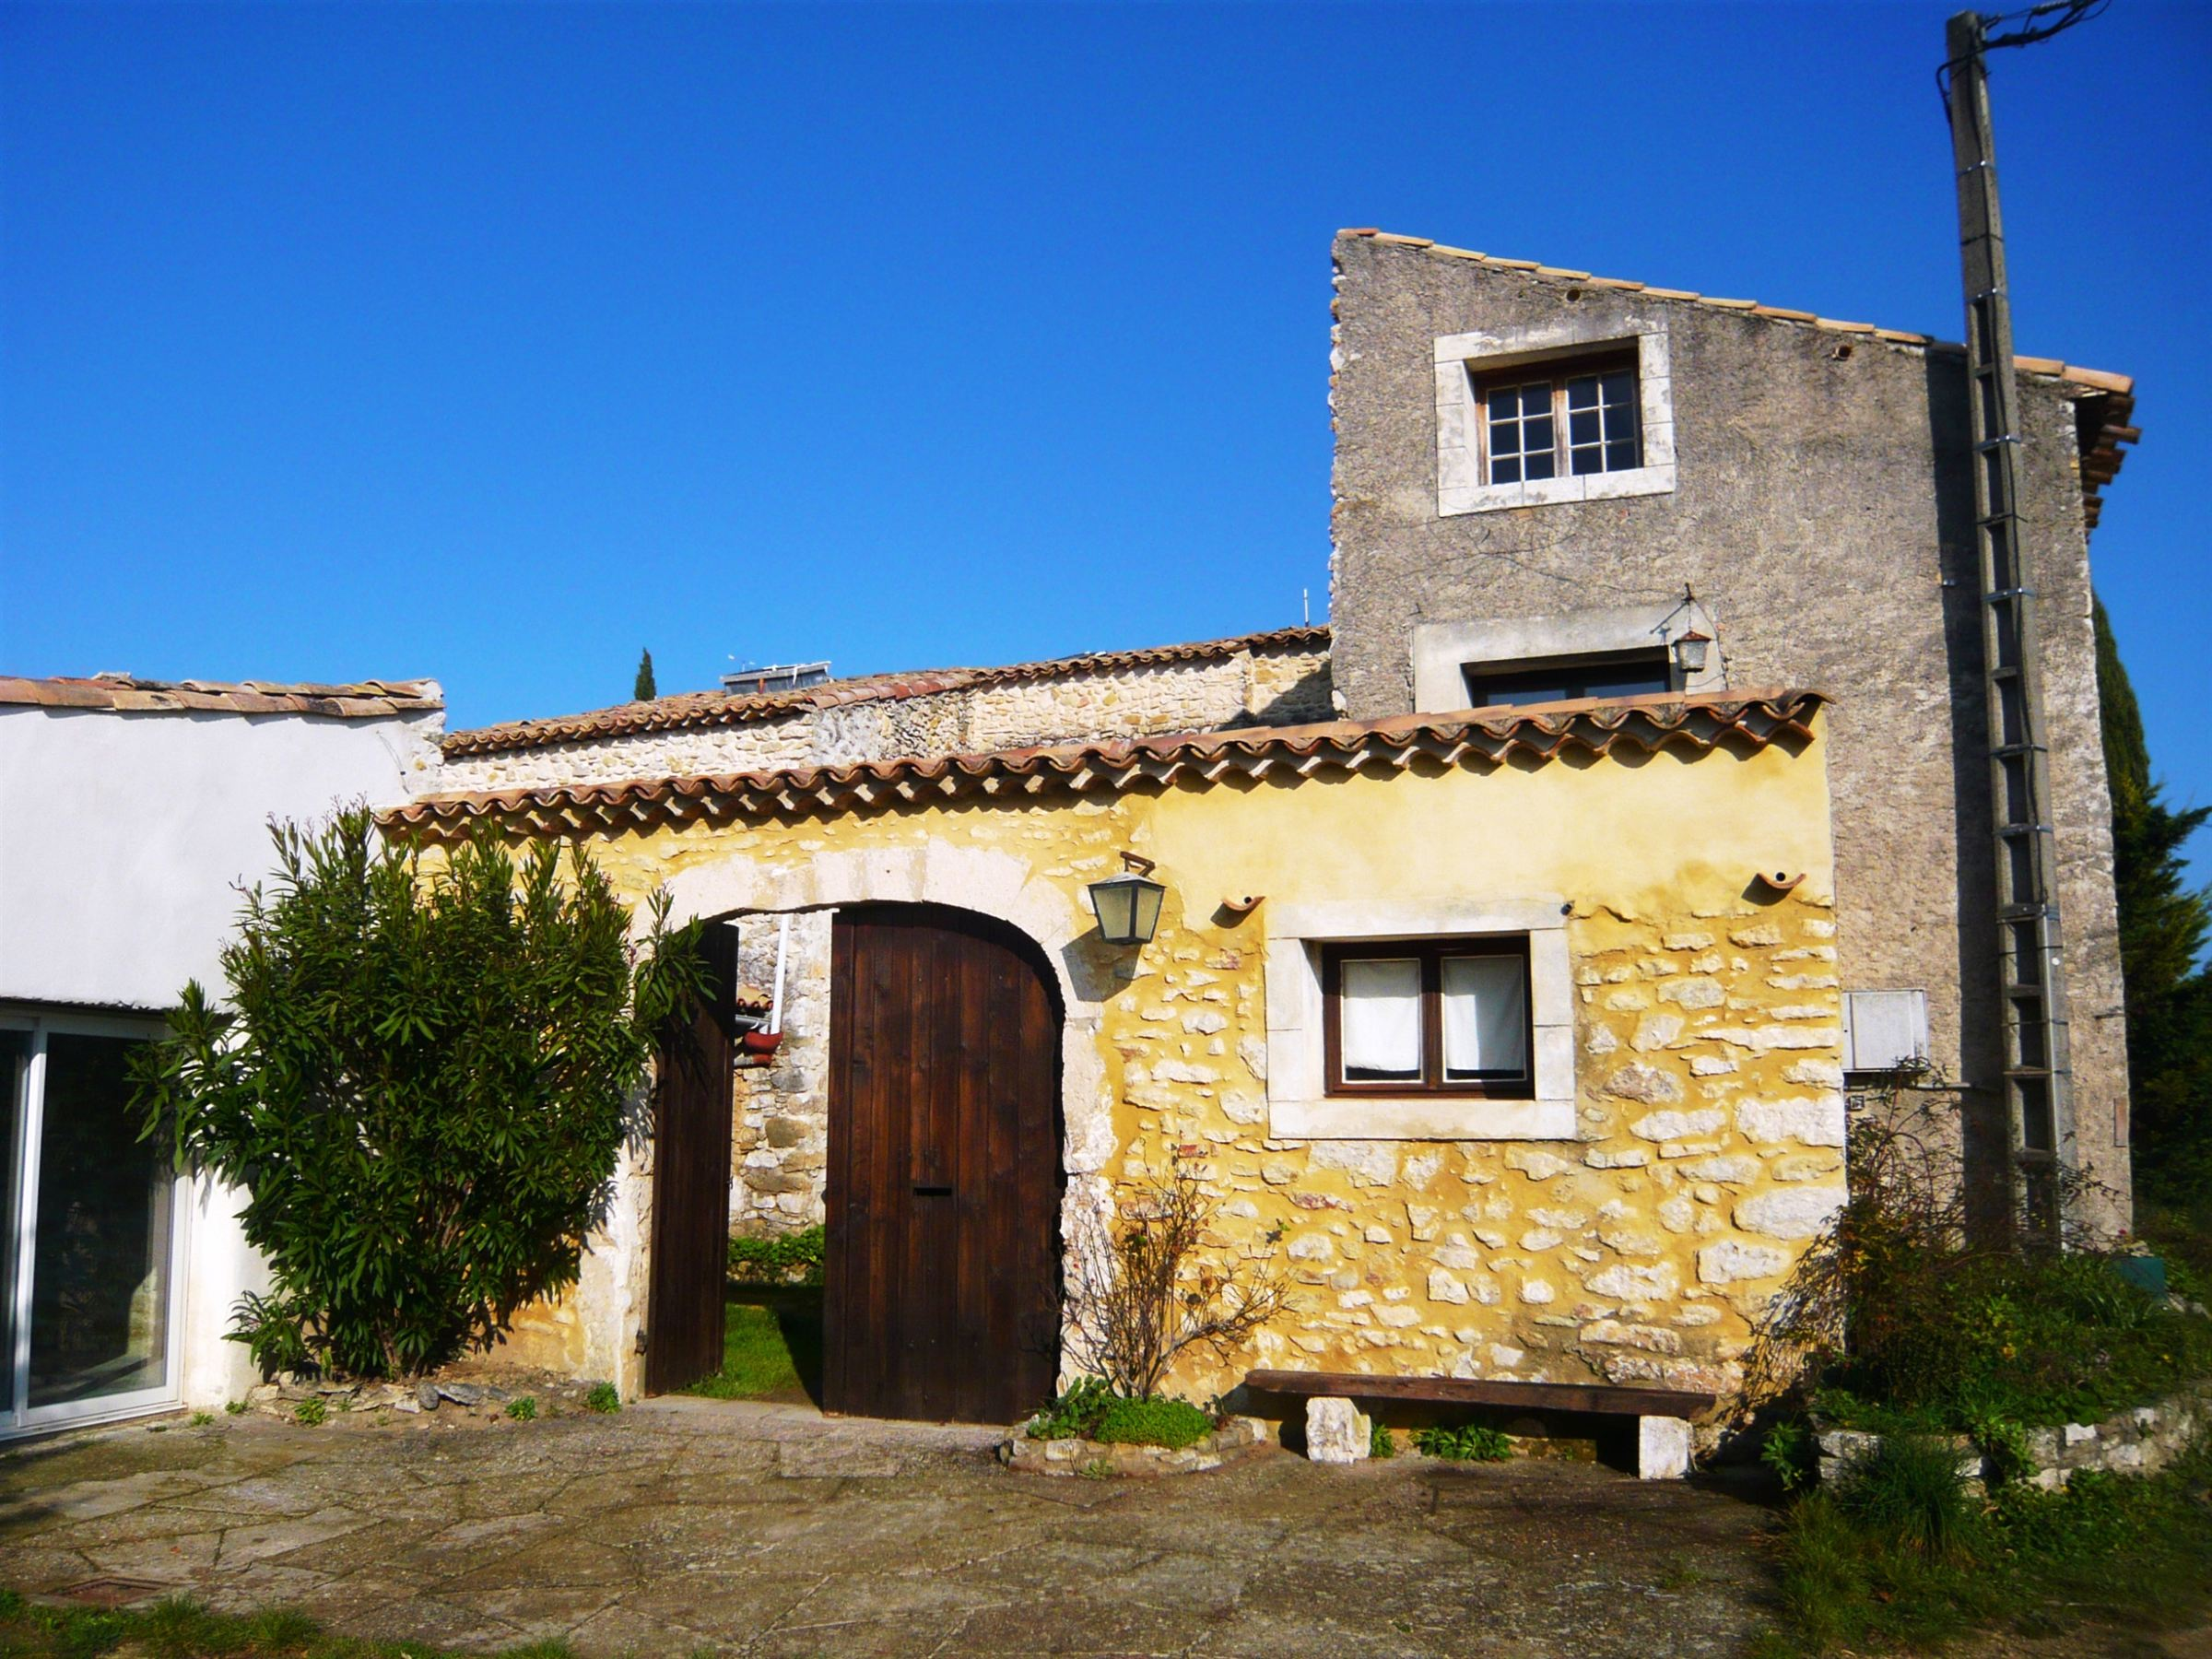 Single Family Home for Sale at House Other Languedoc-Roussillon, Languedoc-Roussillon, 30130 France